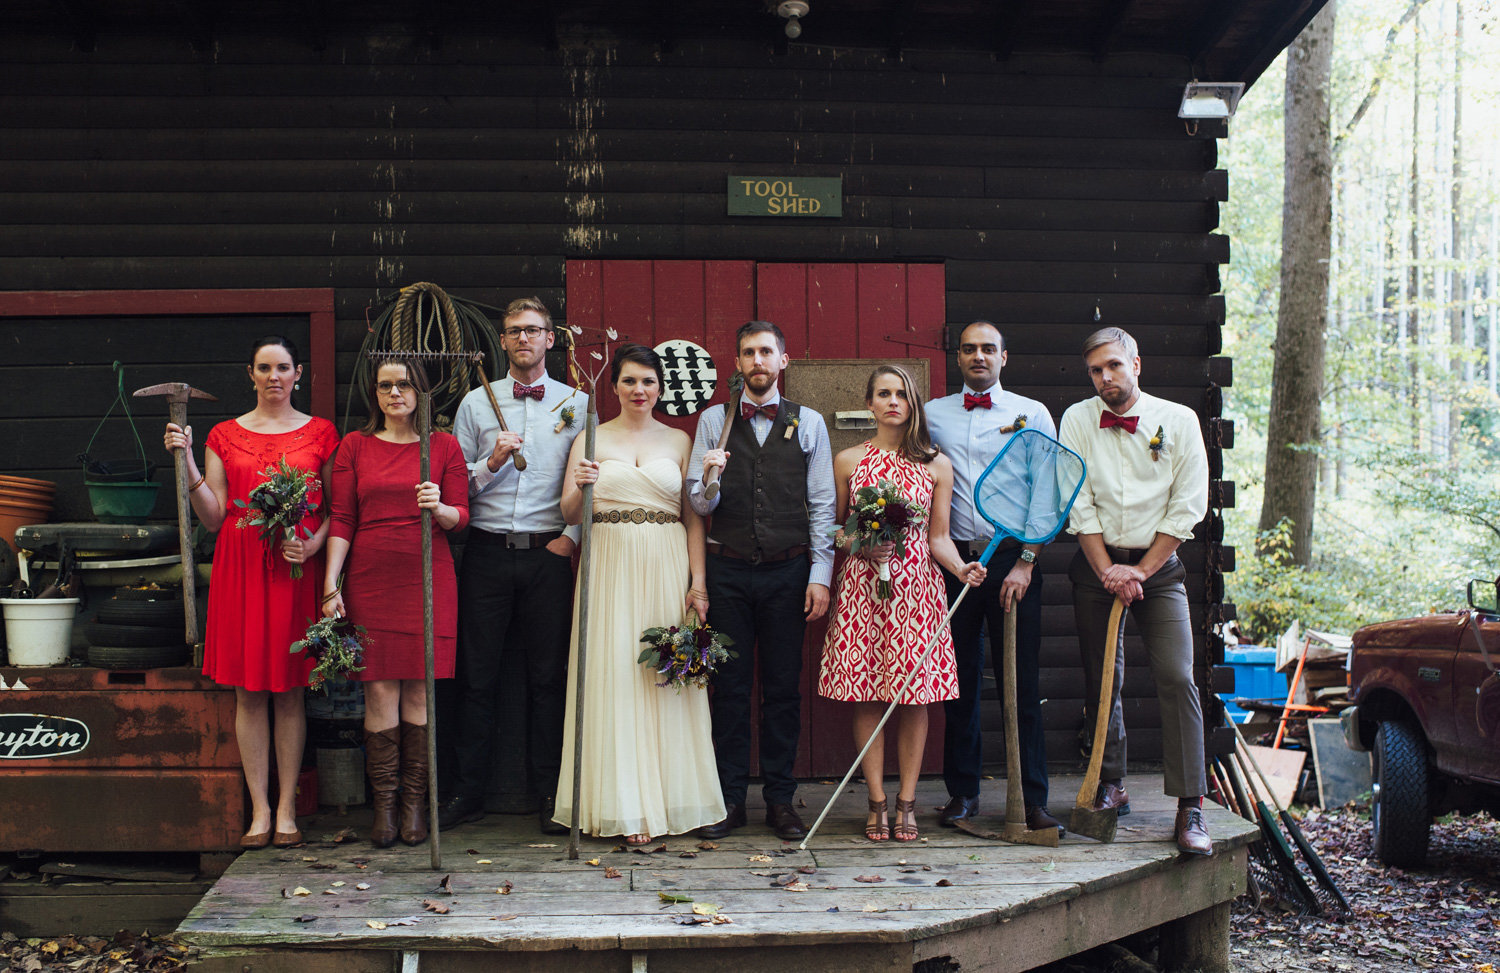 Wedding party poses at a hipster barn wedding